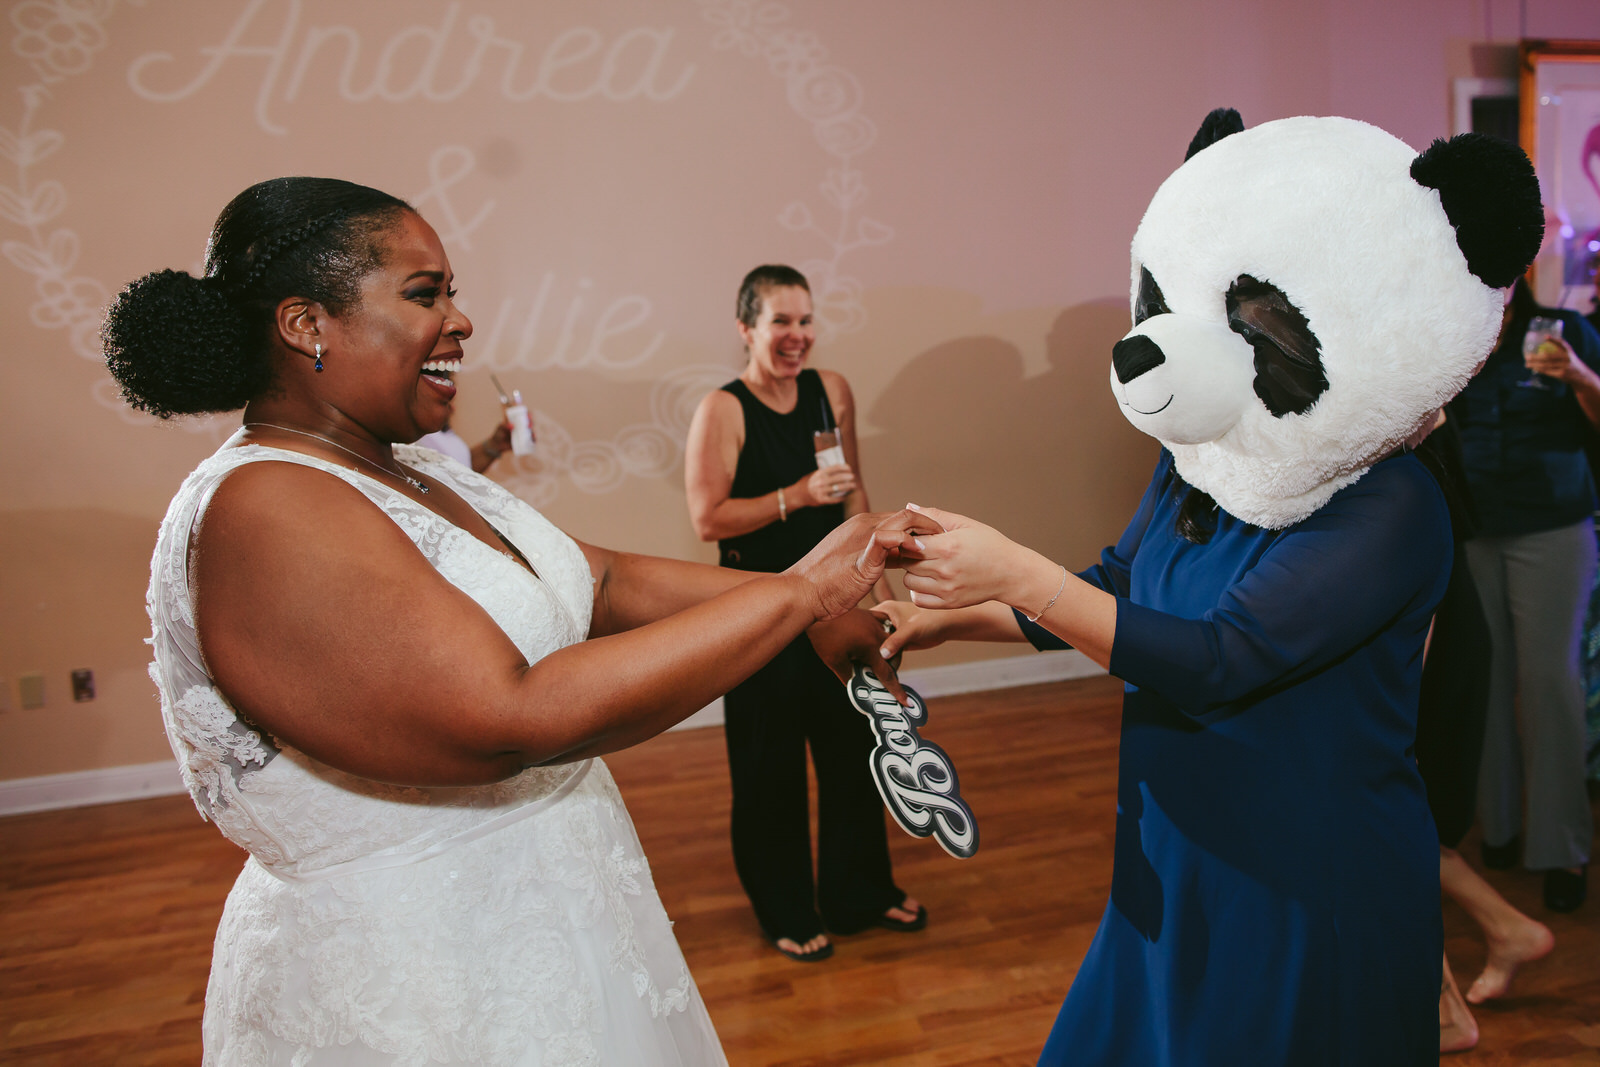 Panda_Dancing_Benvenuto_Wedding_Reception_Tiny_House_Photo.jpg